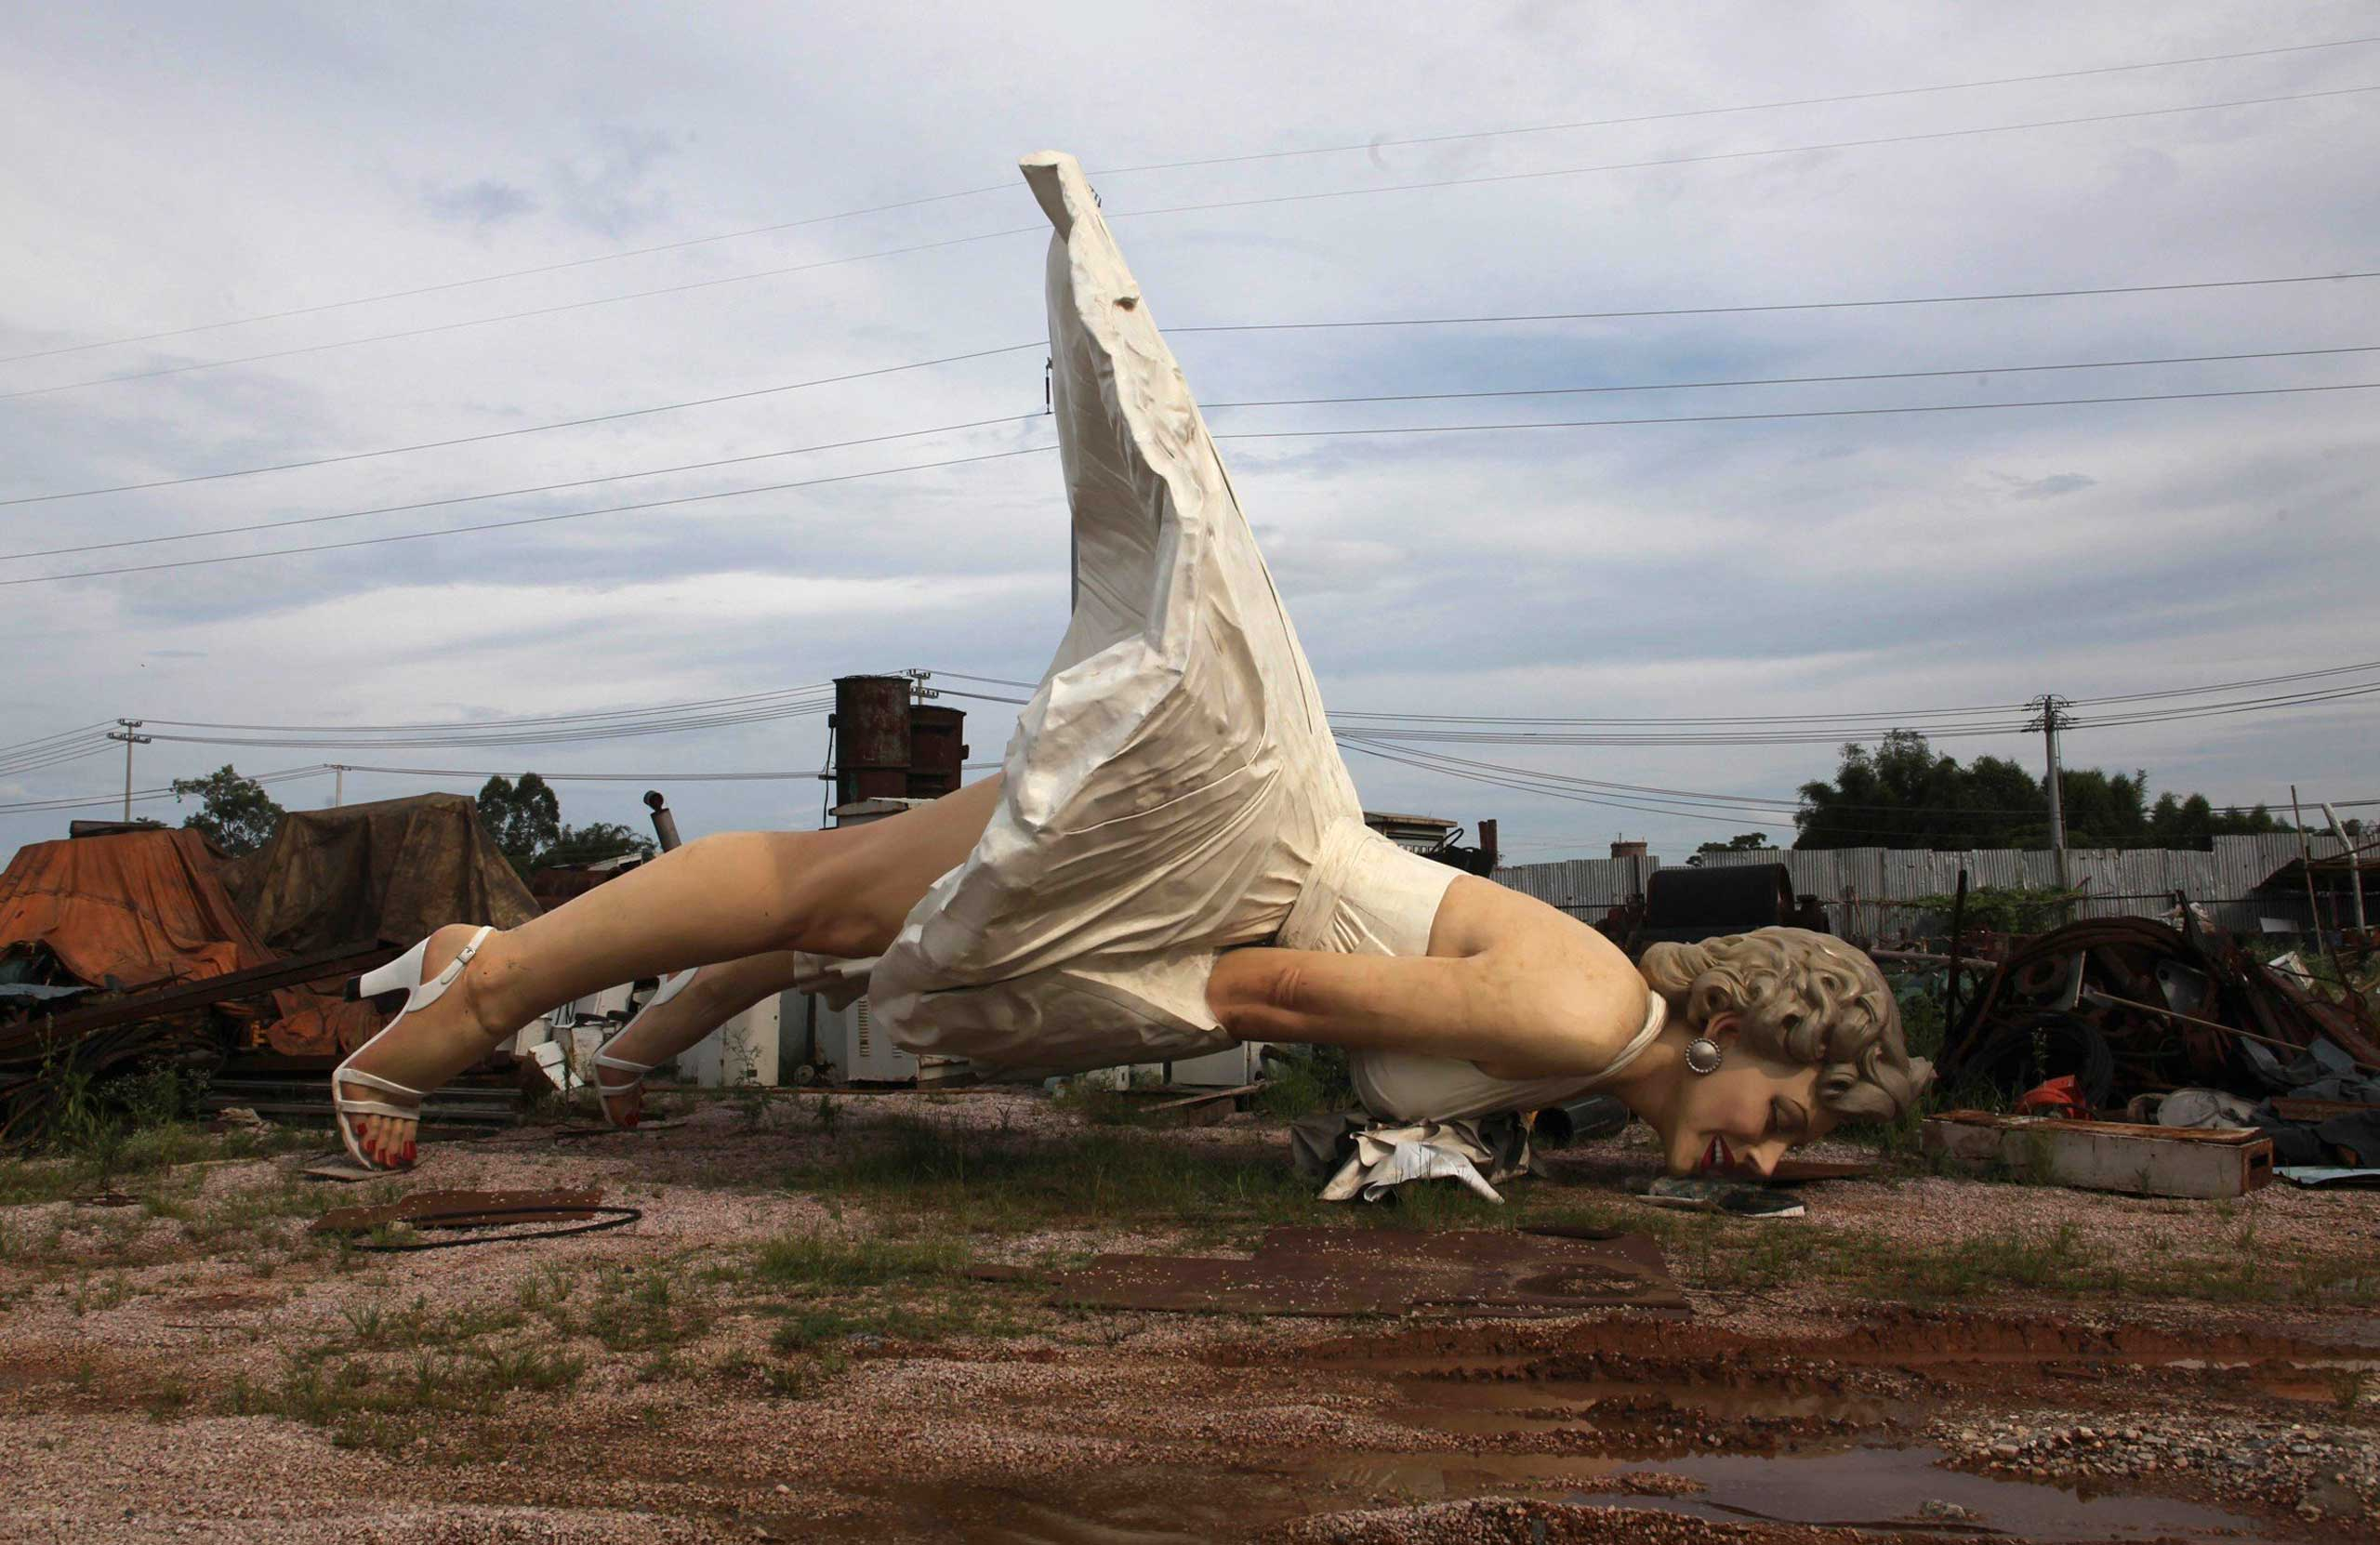 A giant statue of actress Marilyn Monroe is seen at the landfill site of a garbage collecting company in Guigang, Guangxi Zhuang Autonomous Region, China, June 18, 2014.